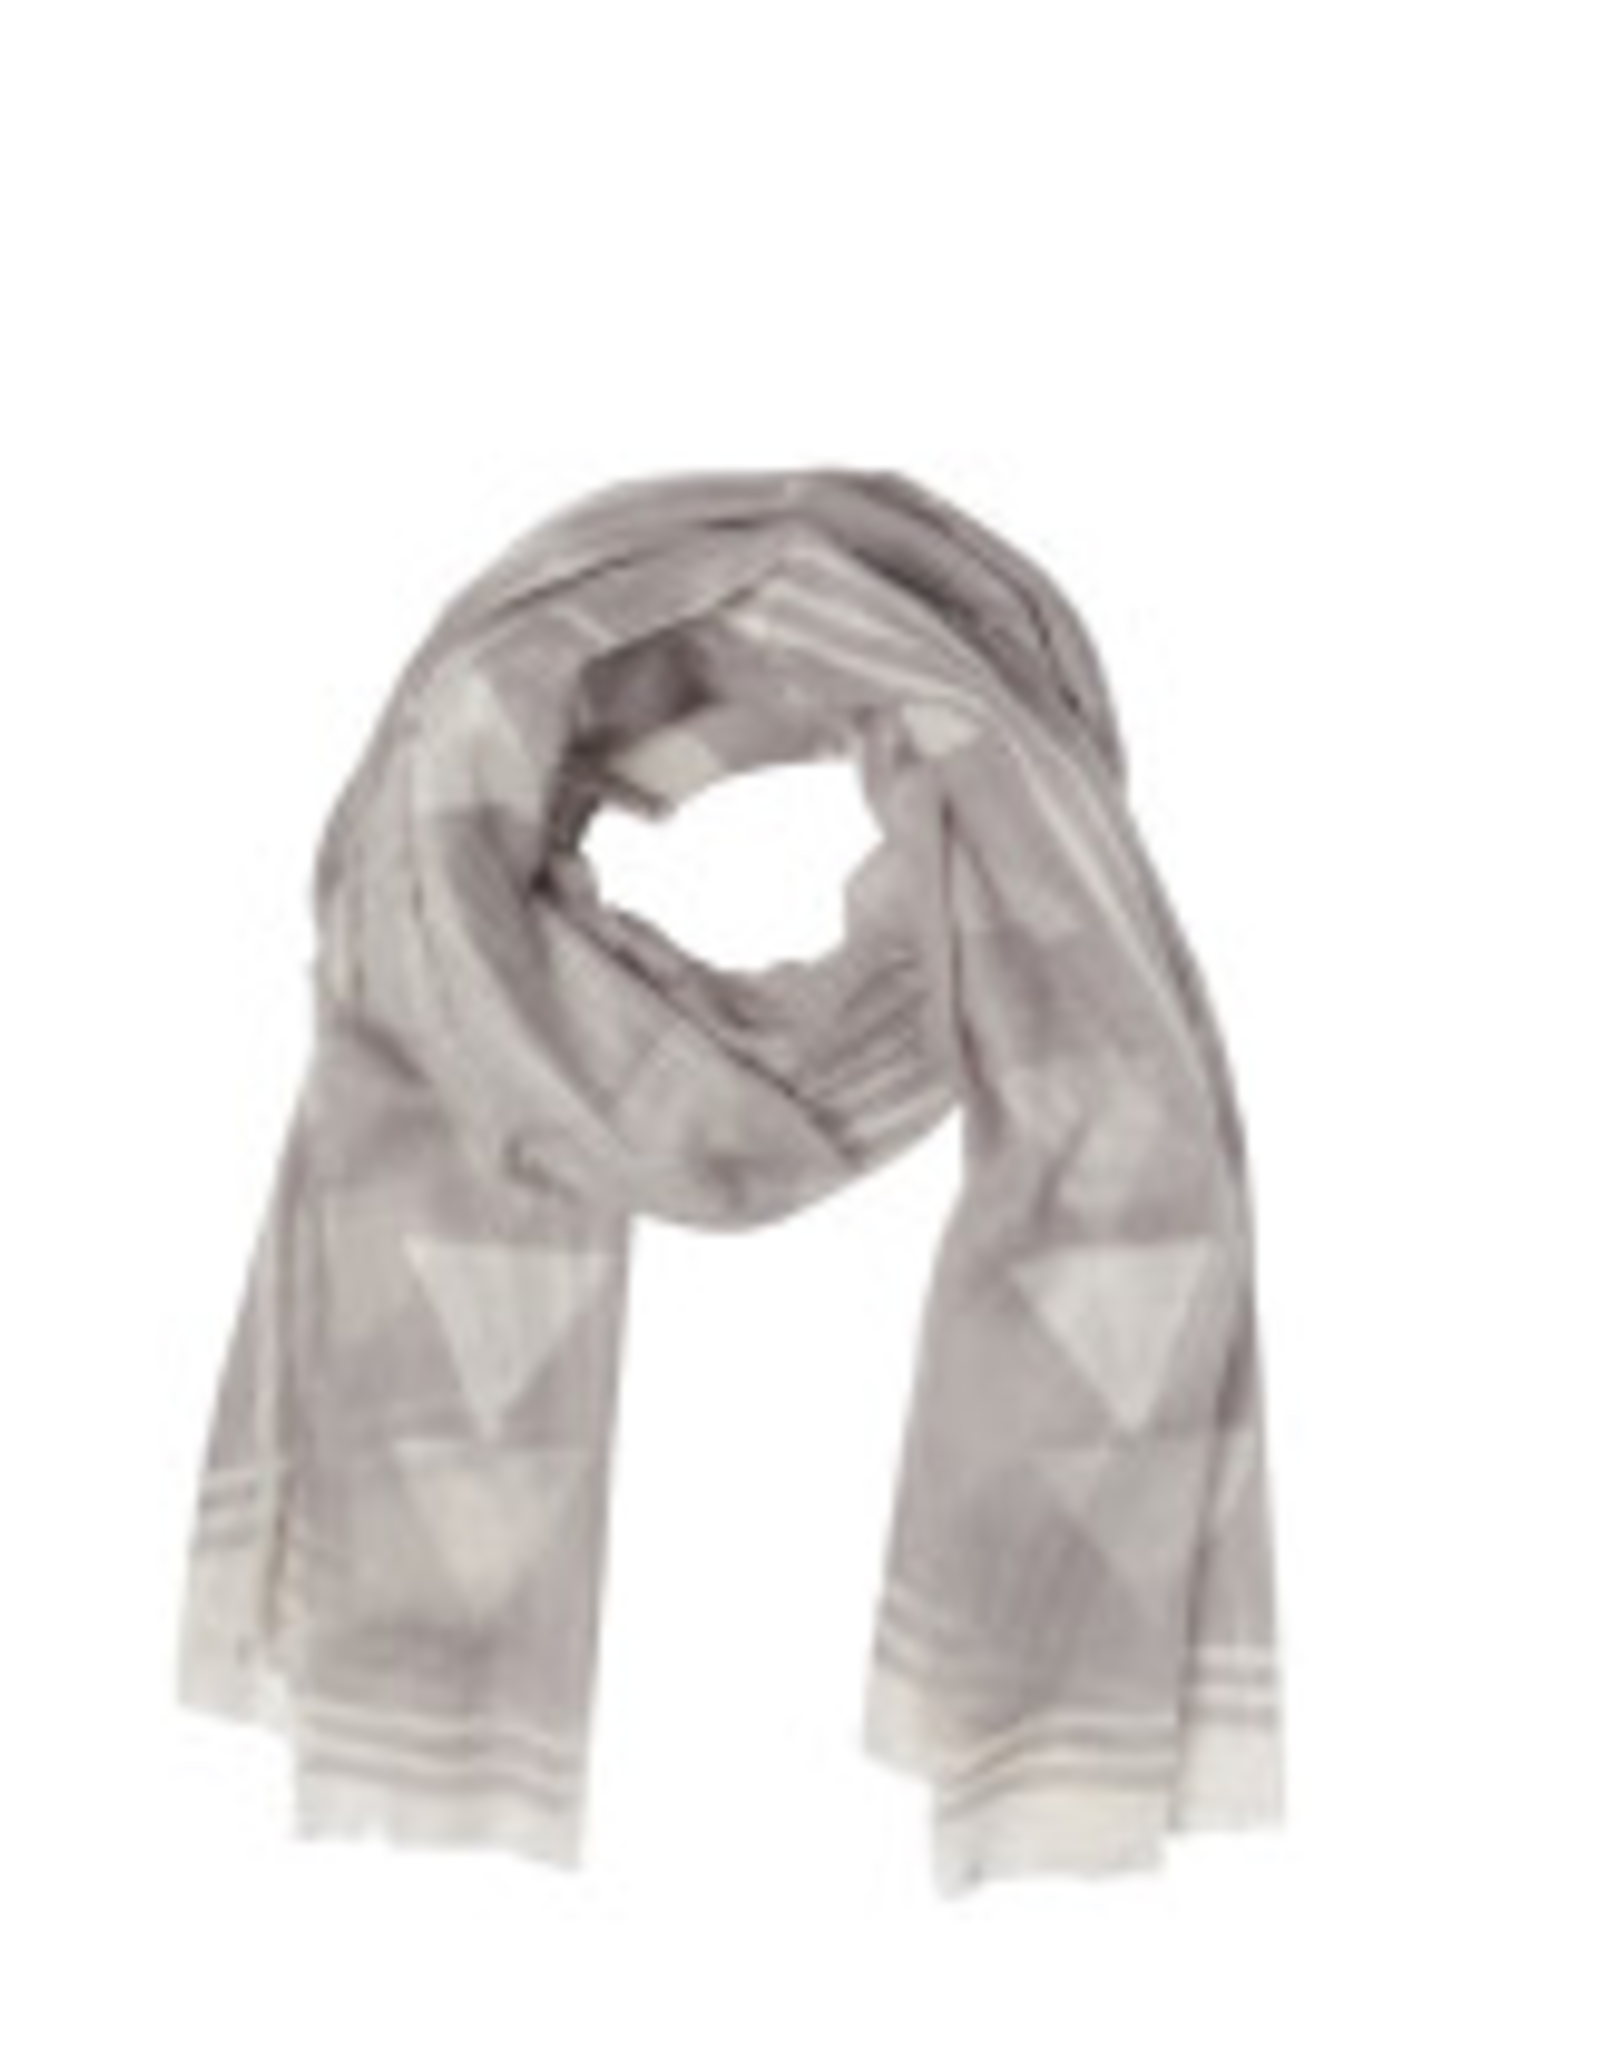 NOW DESIGNS SCARF 40X72 ECLIPSE GREY AND WHITE PATTERN